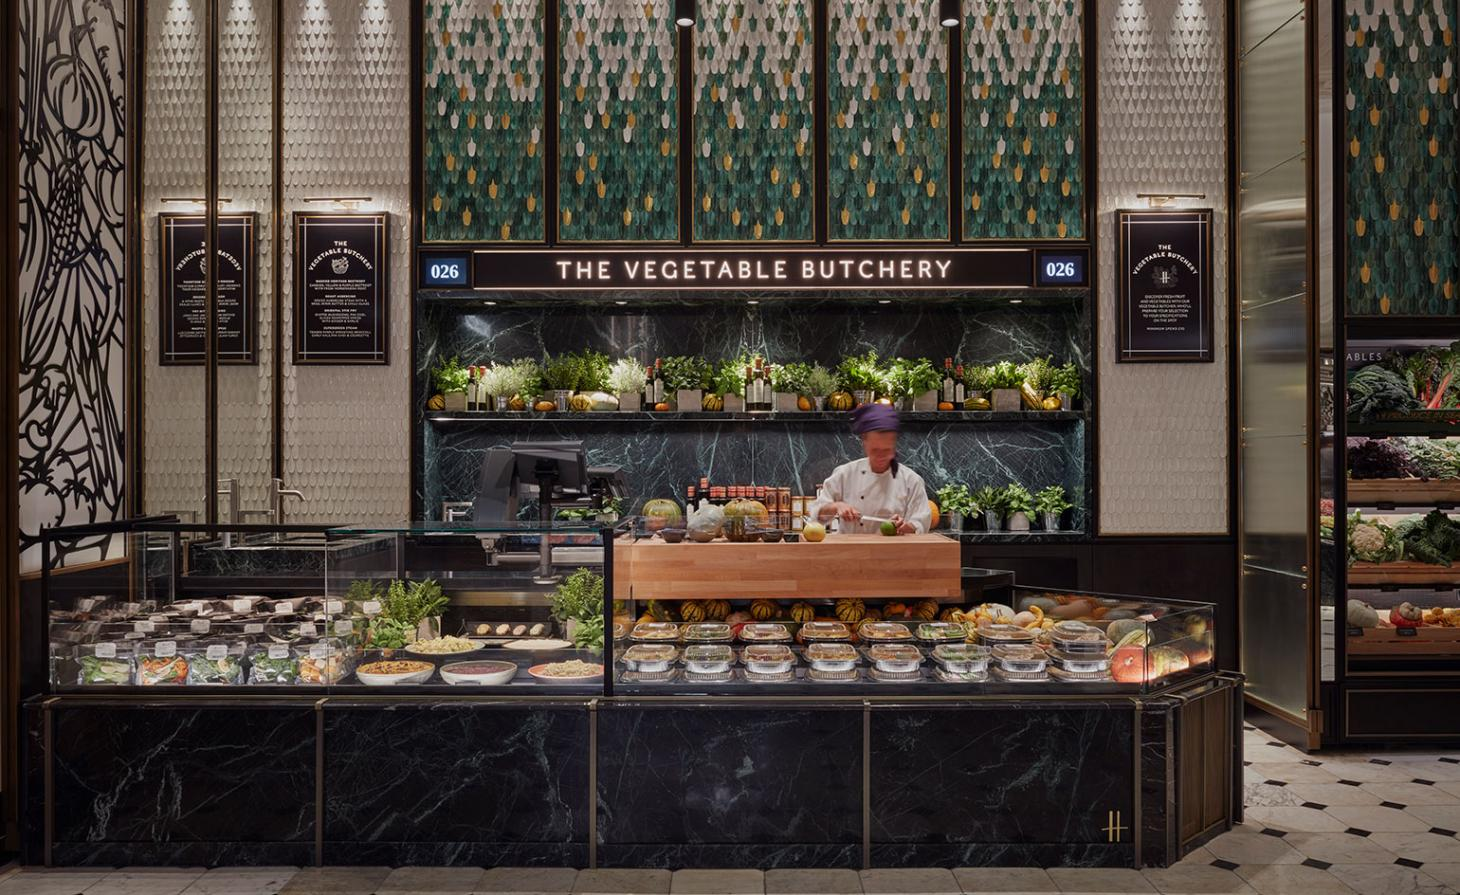 Vegetable Butchery at Harrods, London